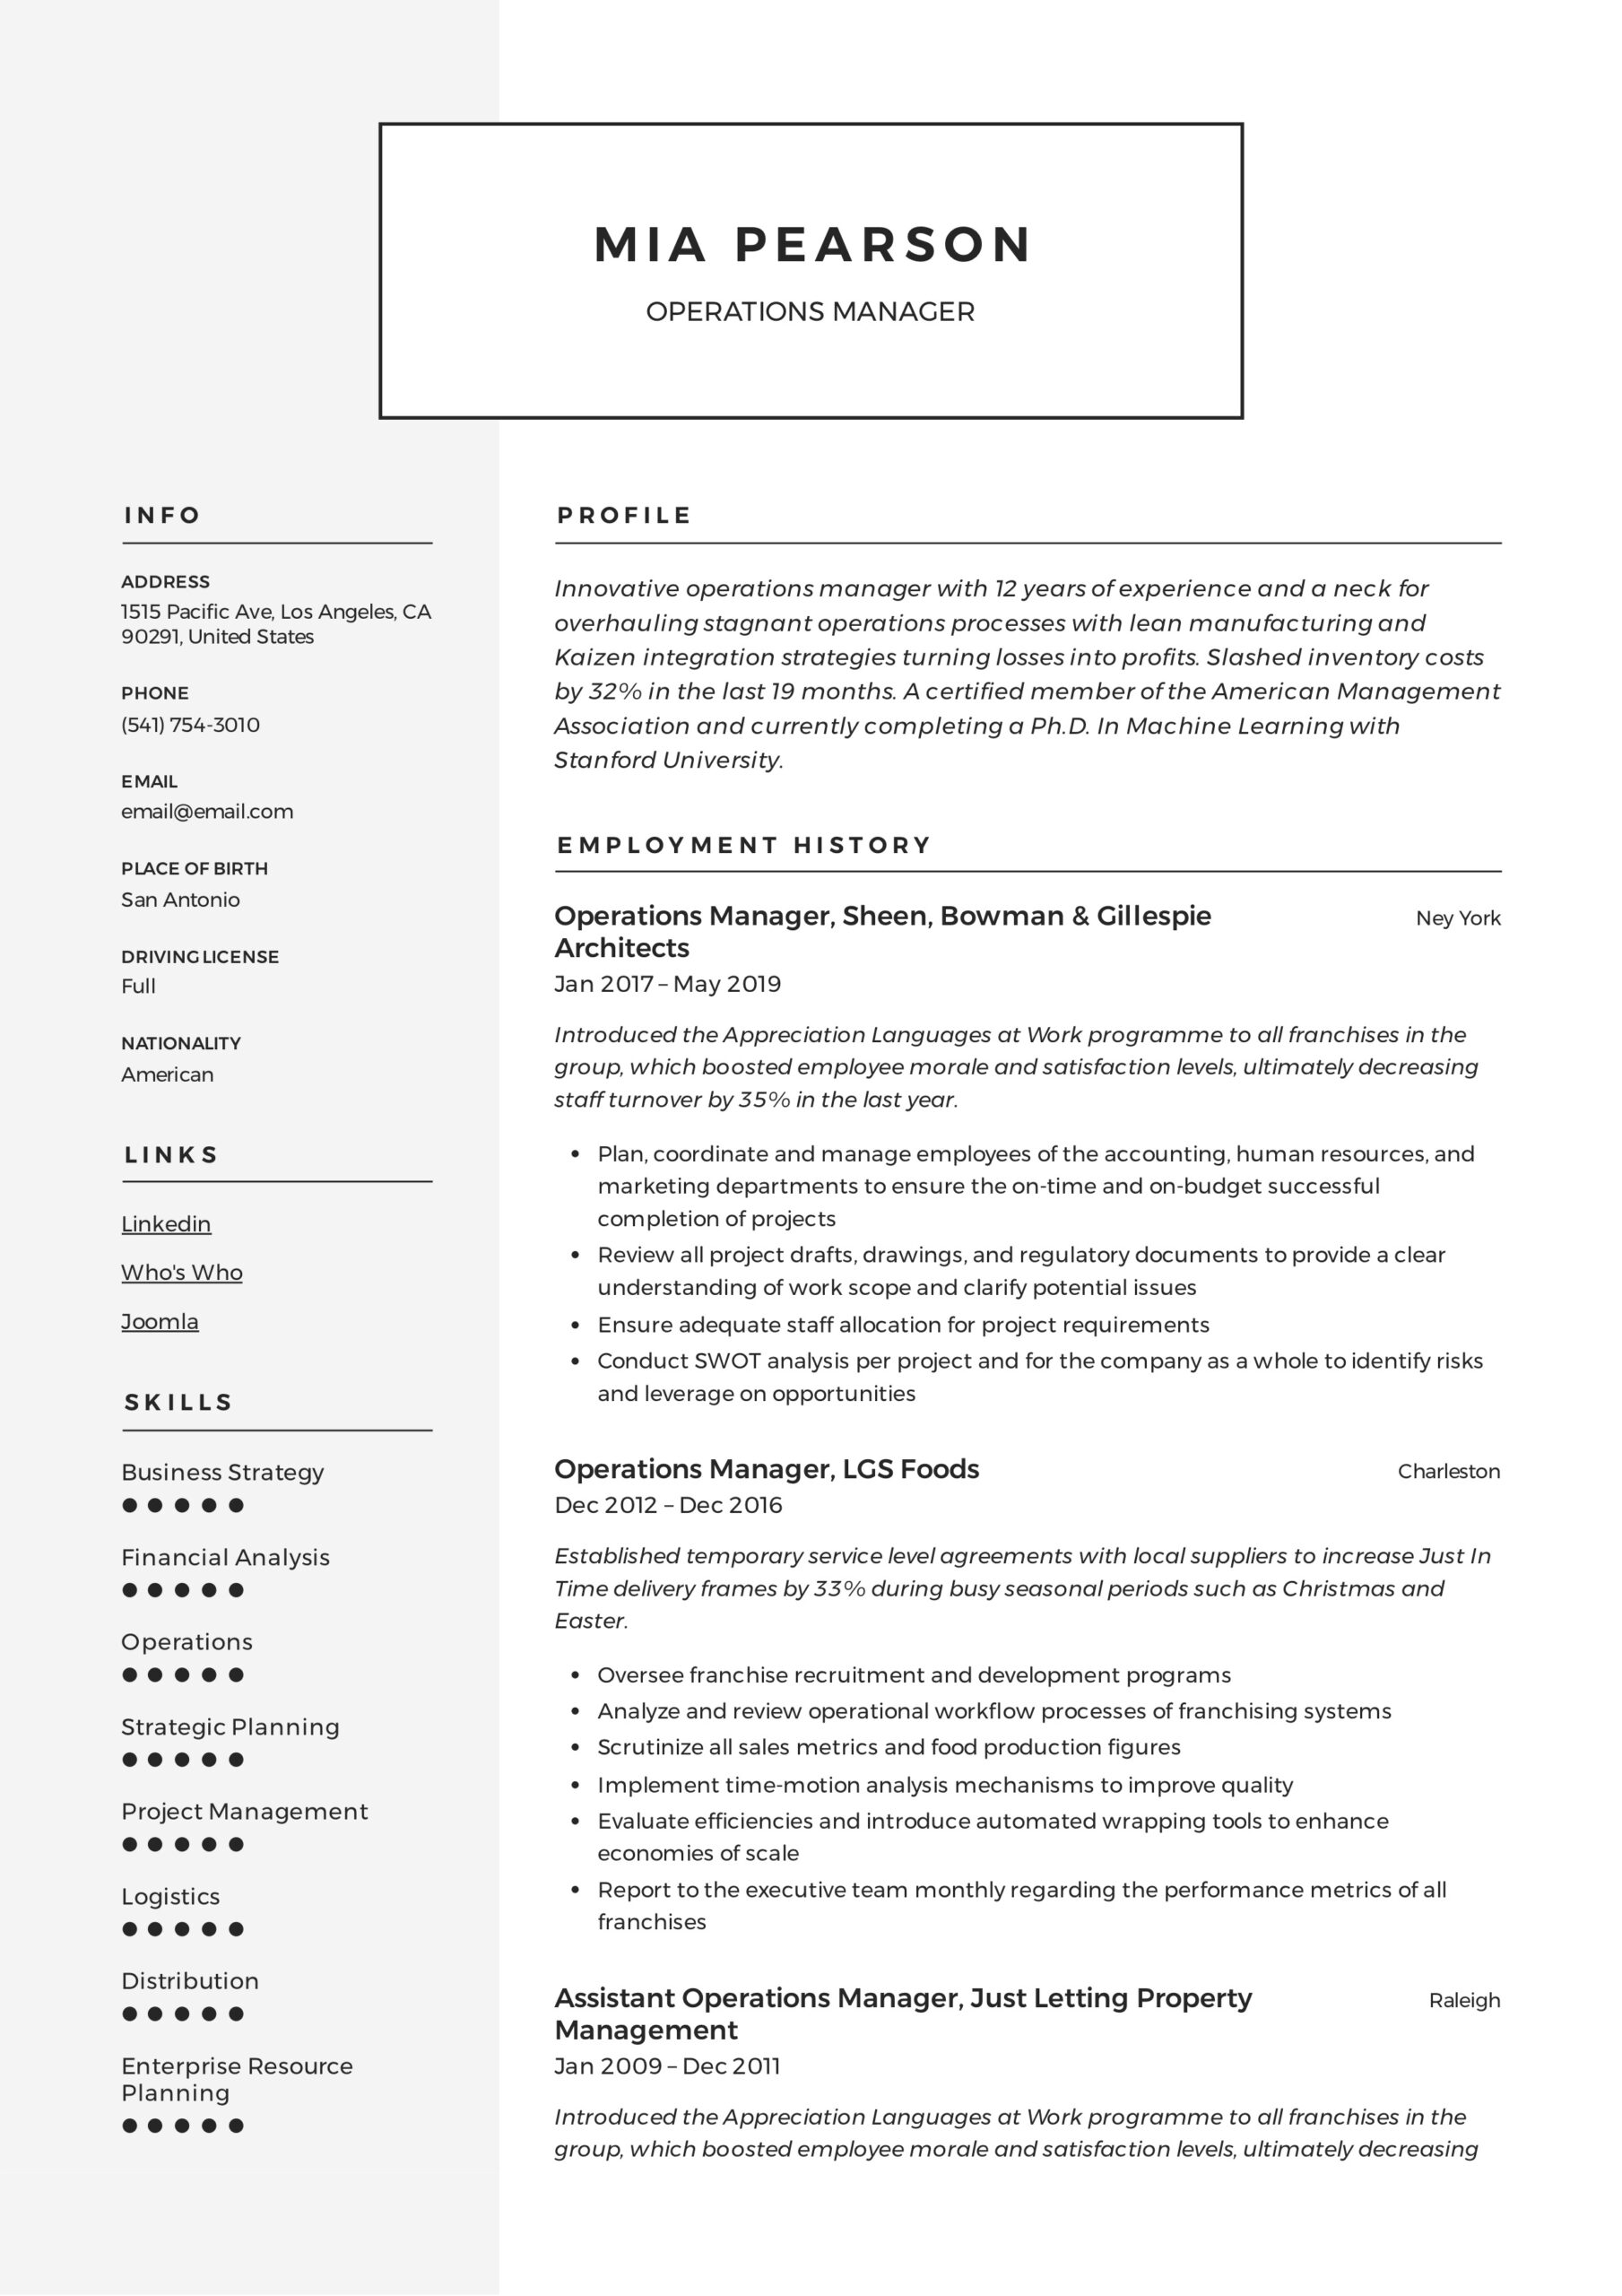 operations manager resume writing guide examples pdf distribution sample example creative Resume Distribution Operations Manager Resume Sample